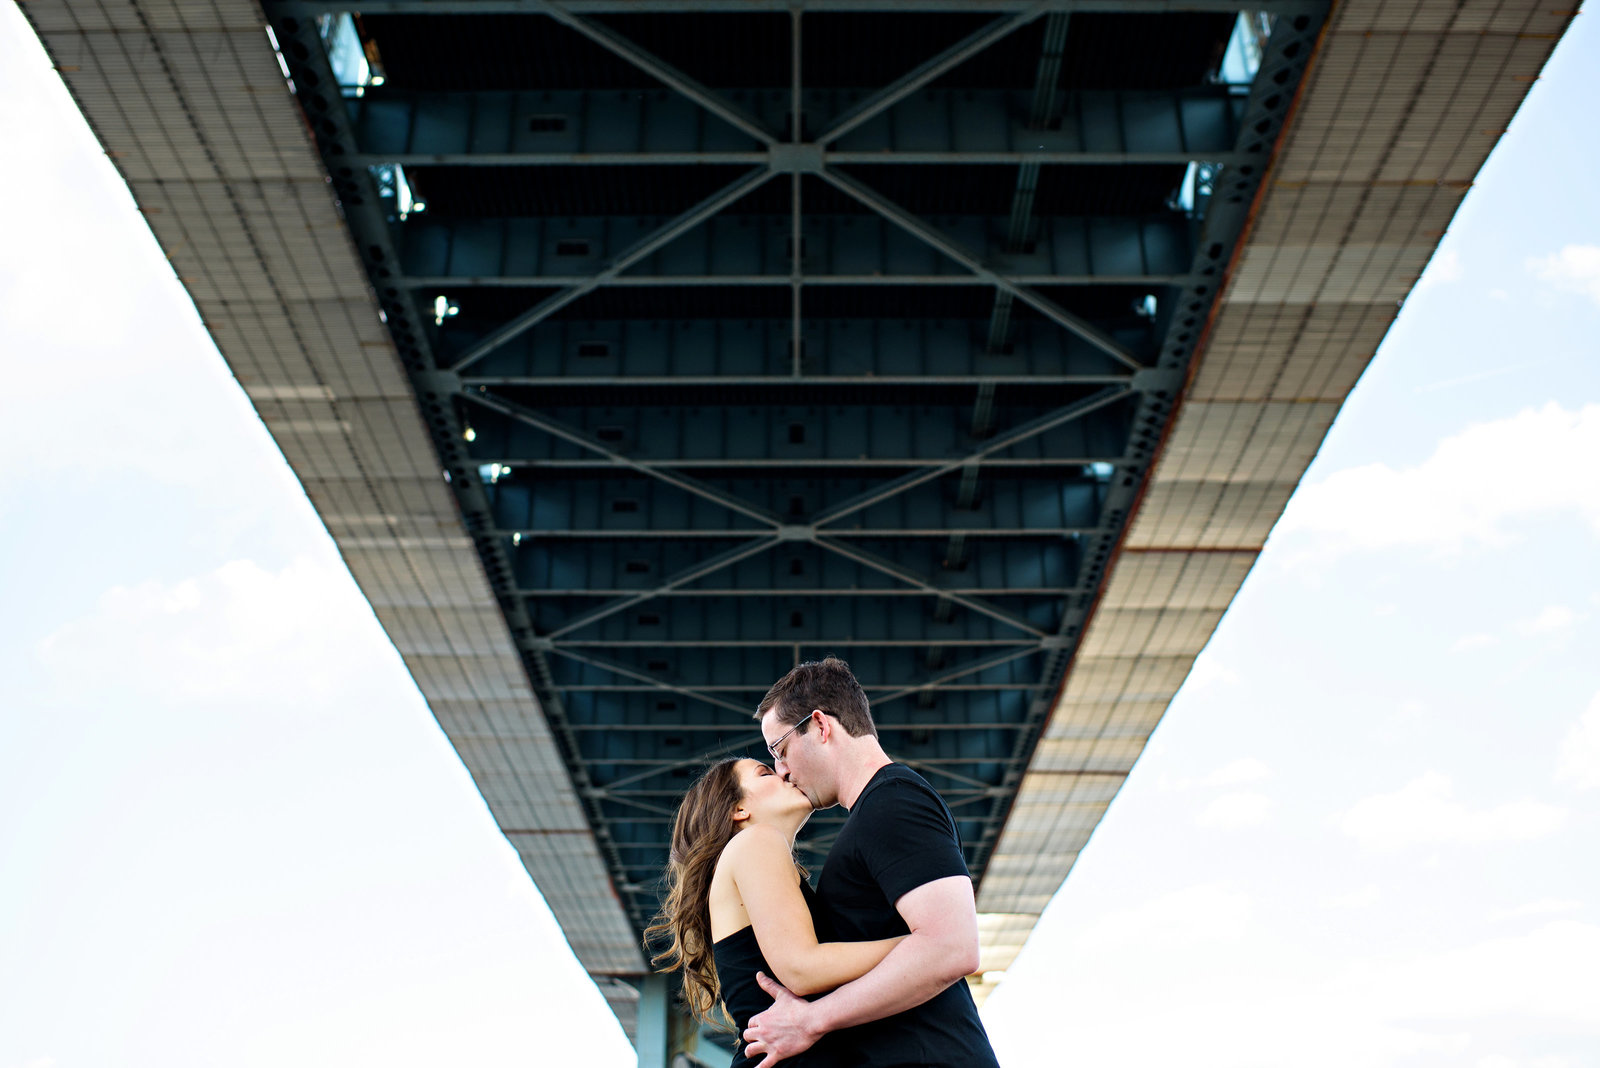 Two people in love kiss under the ben franklin bridge.